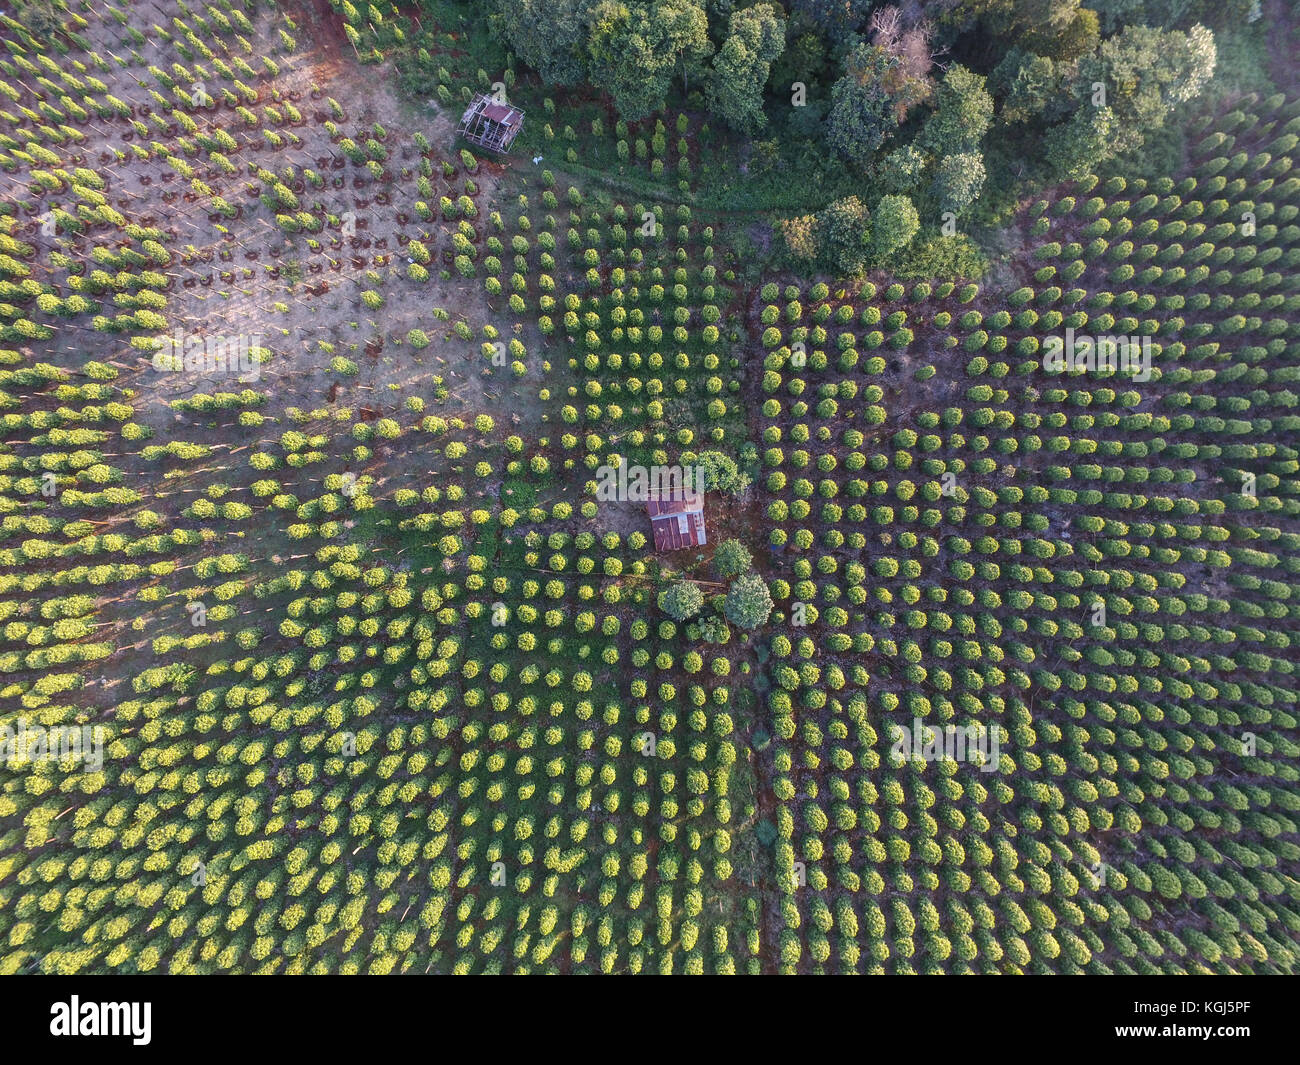 Pepper farm area in the island of Sulawesi Indonesia taken with drone - Stock Image